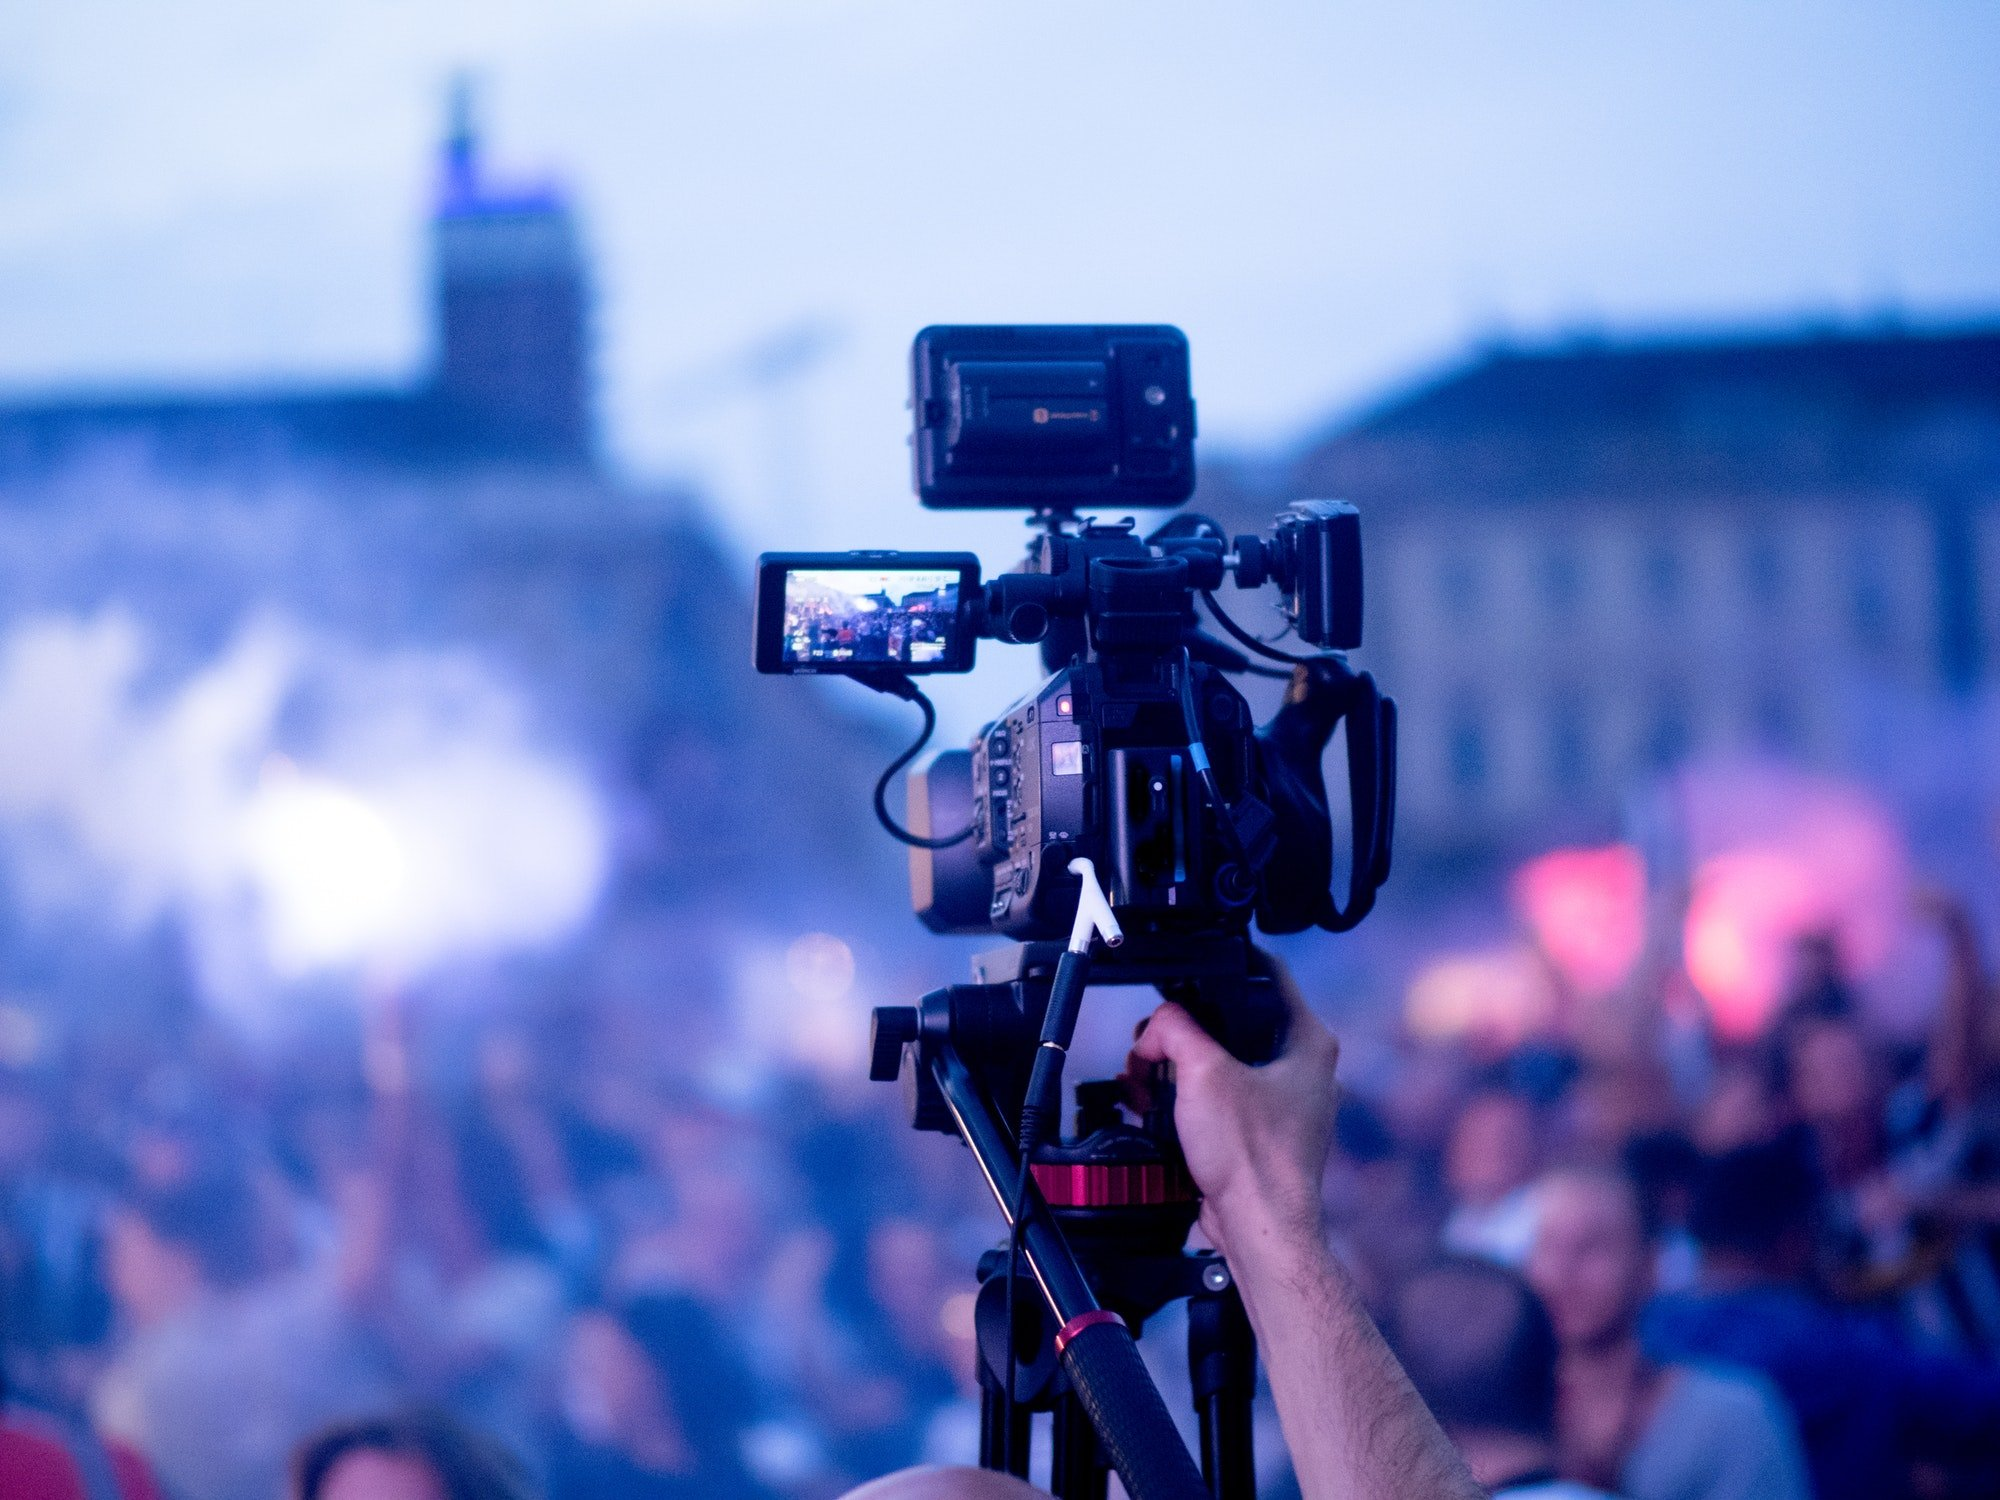 Broadcasting live event with video camera